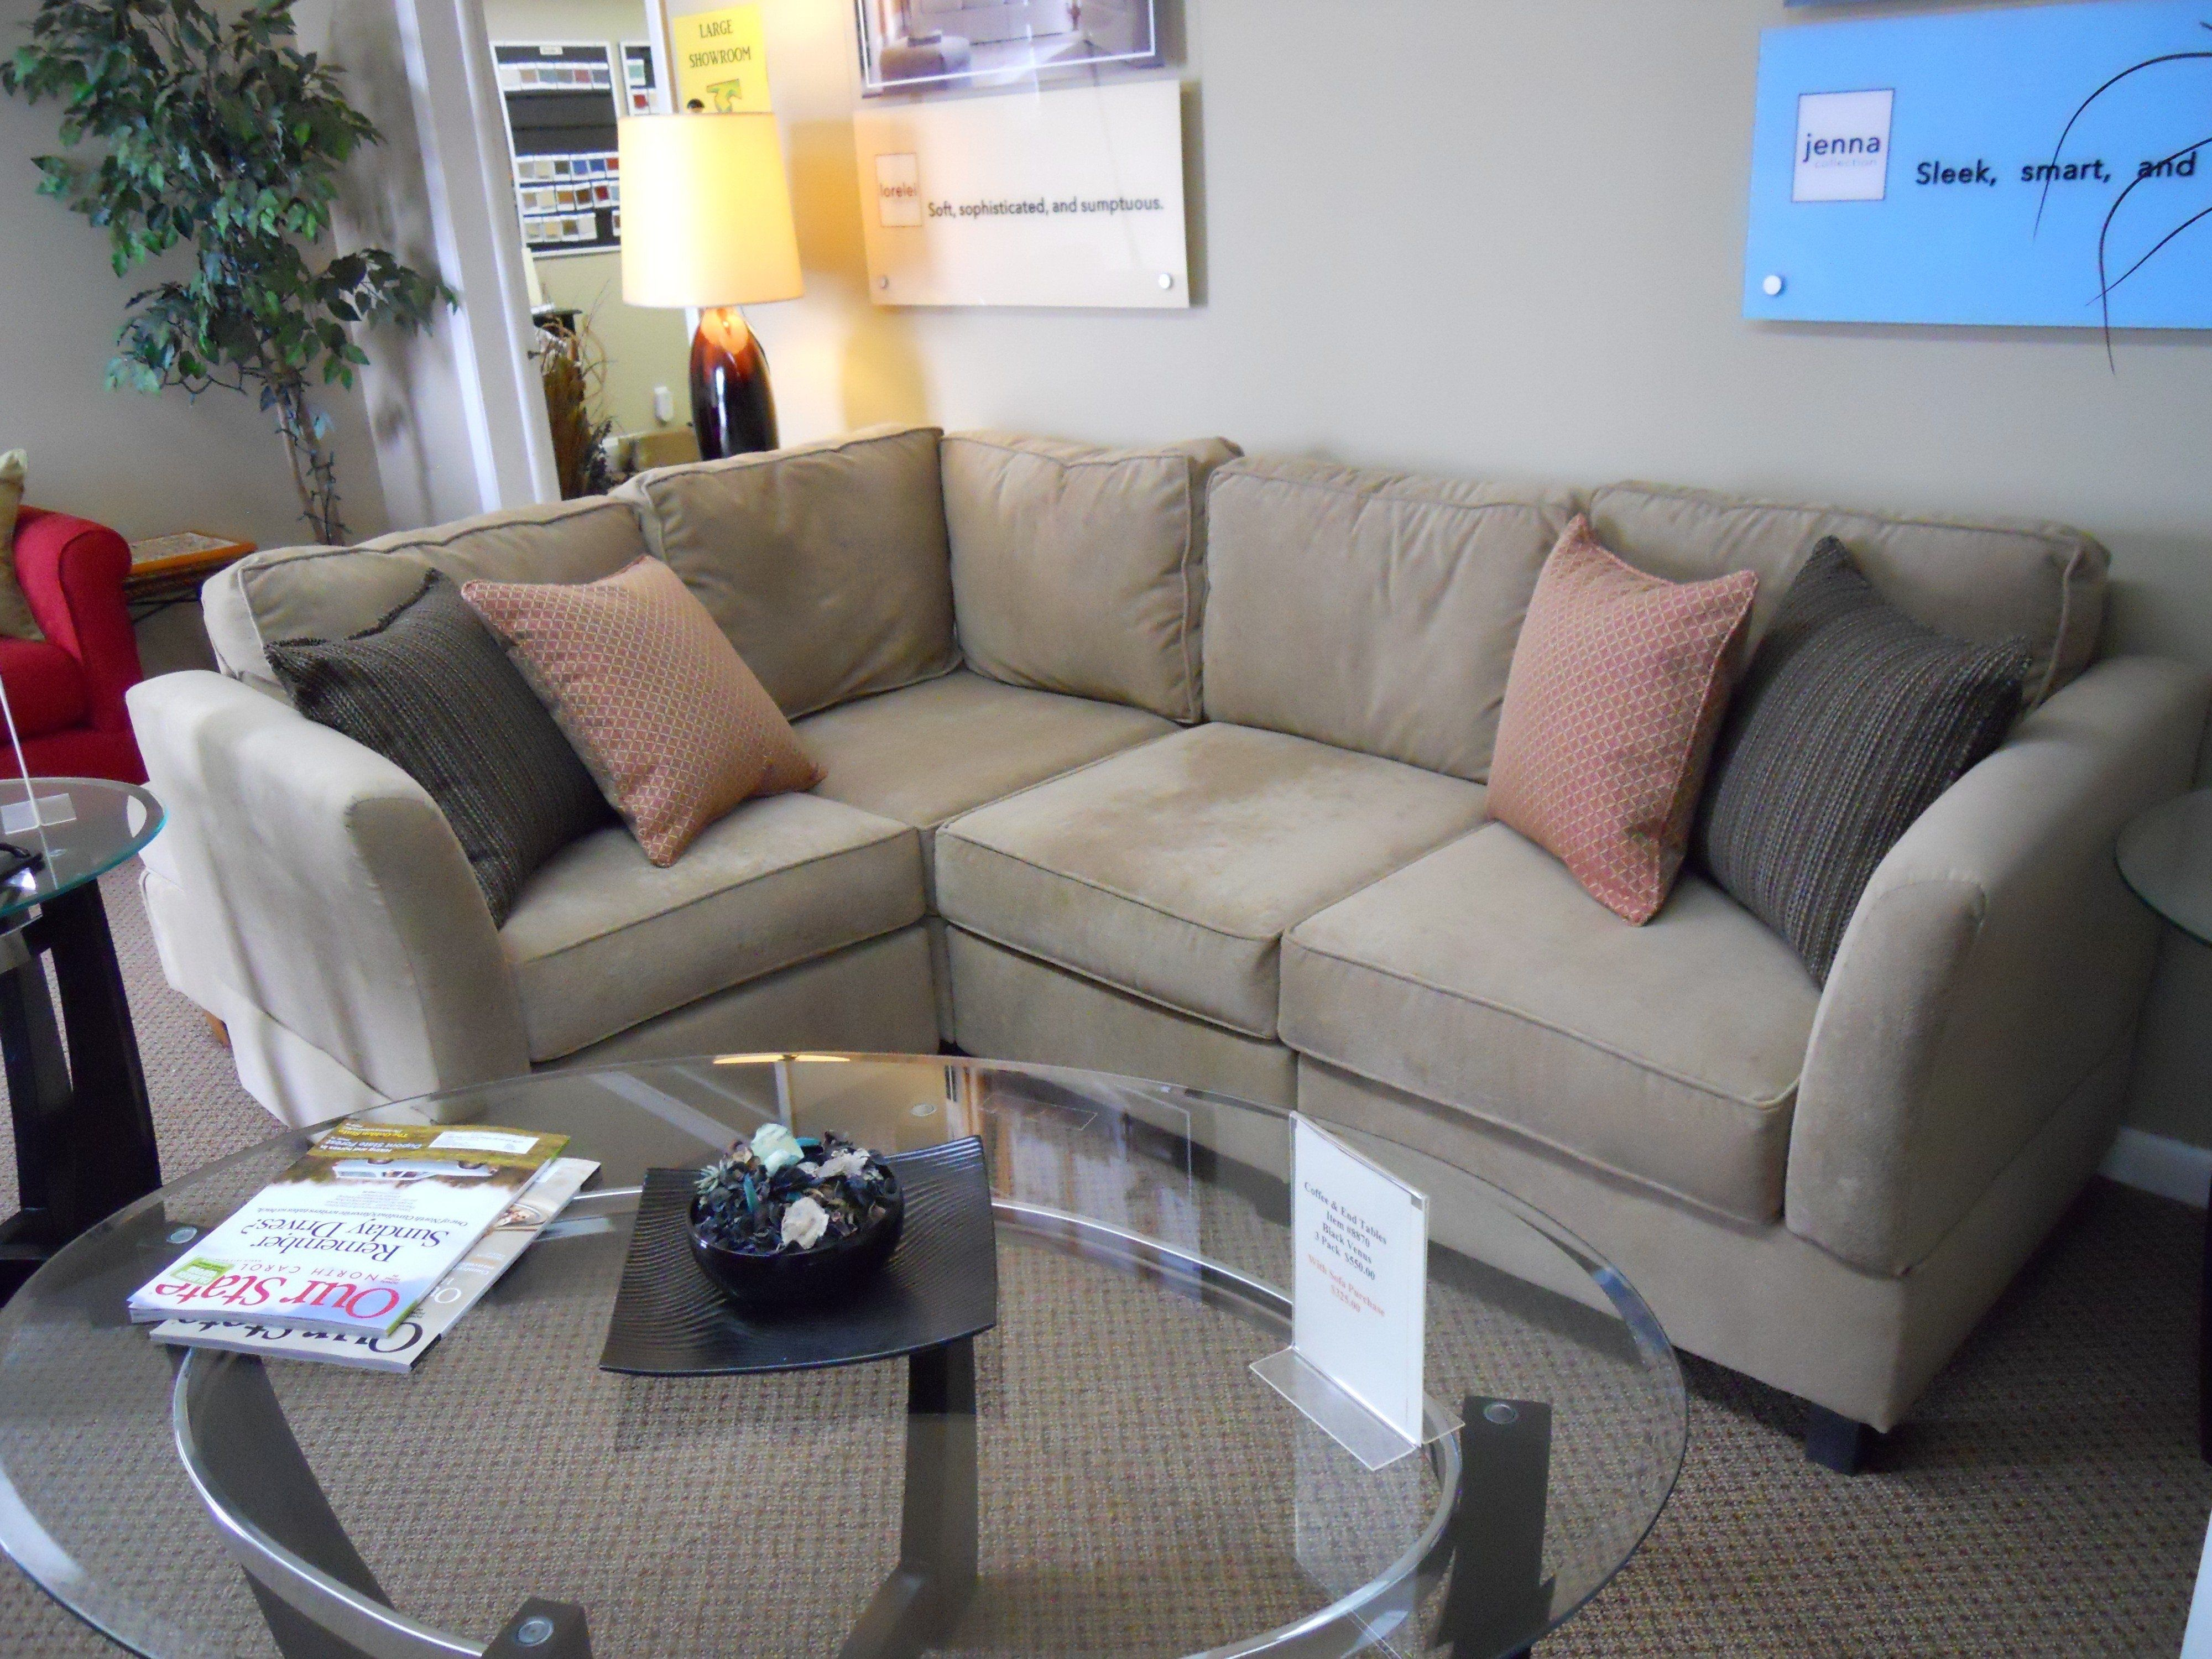 Seating Furniture Sectional Sofa For Small Spaces In 2020